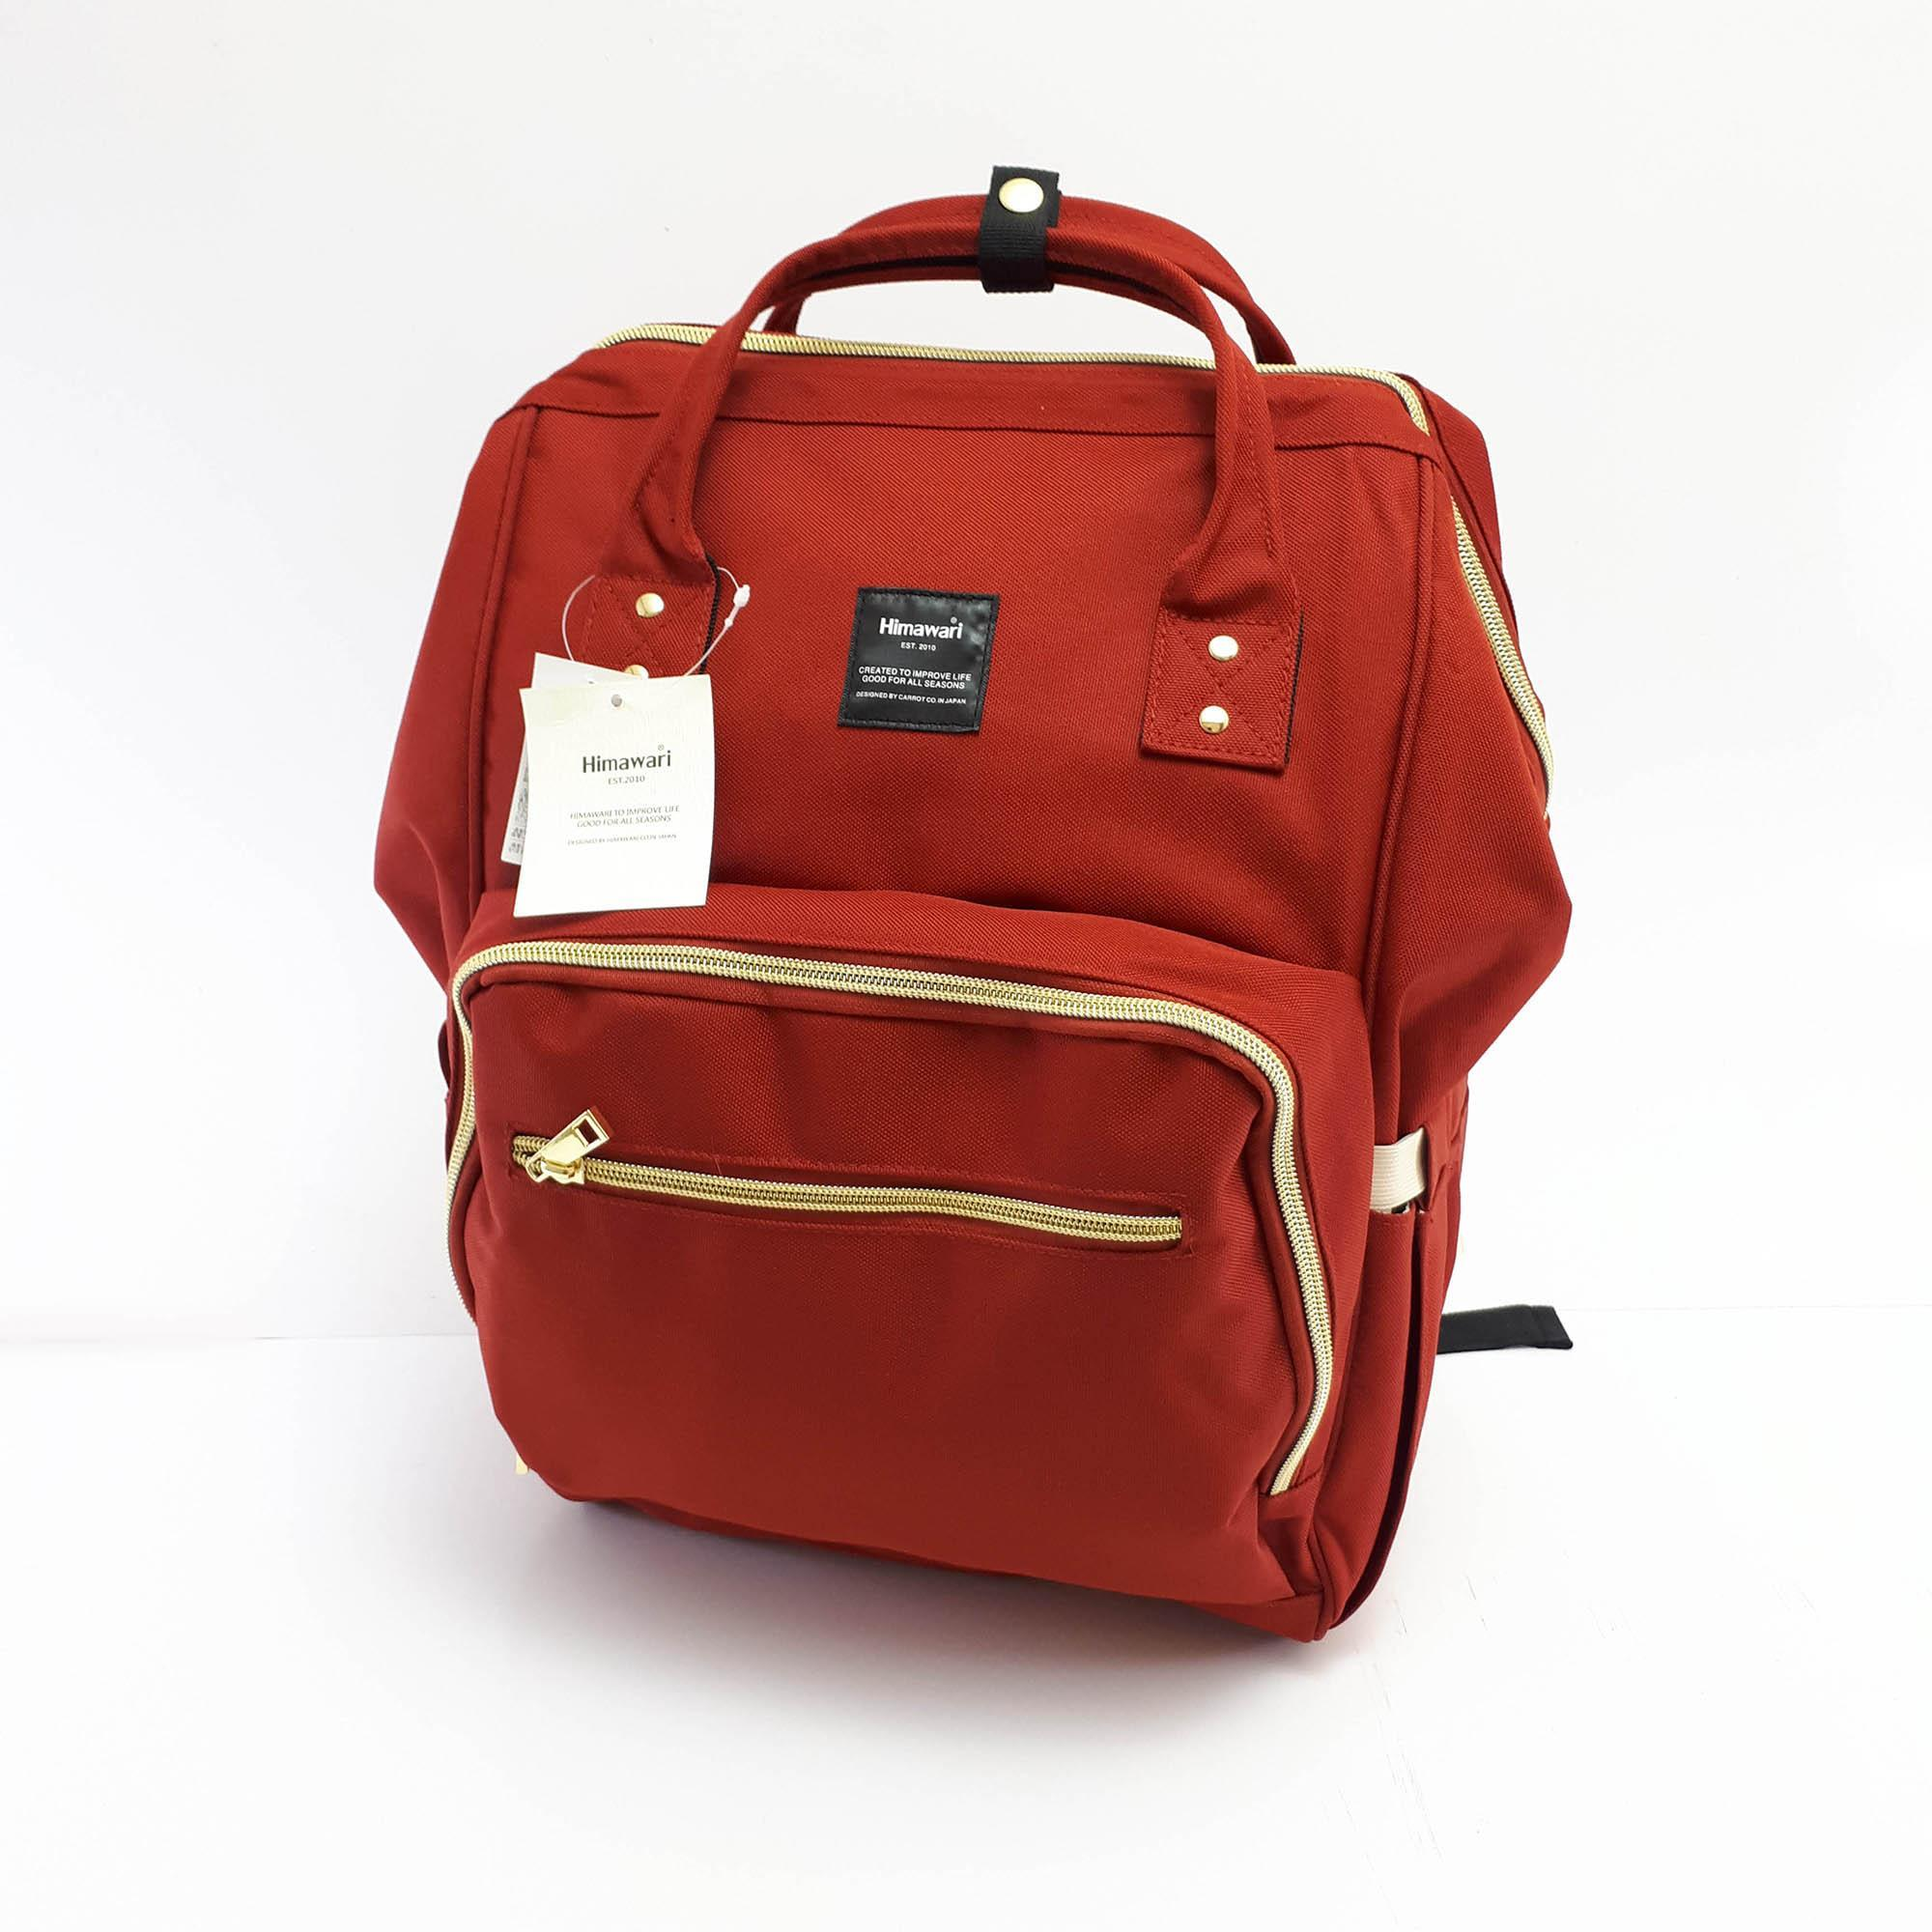 Tas Anello Selempang Ransel Backpack Small Mini Bag Import Tas Wanita - MERAH - EDW 027